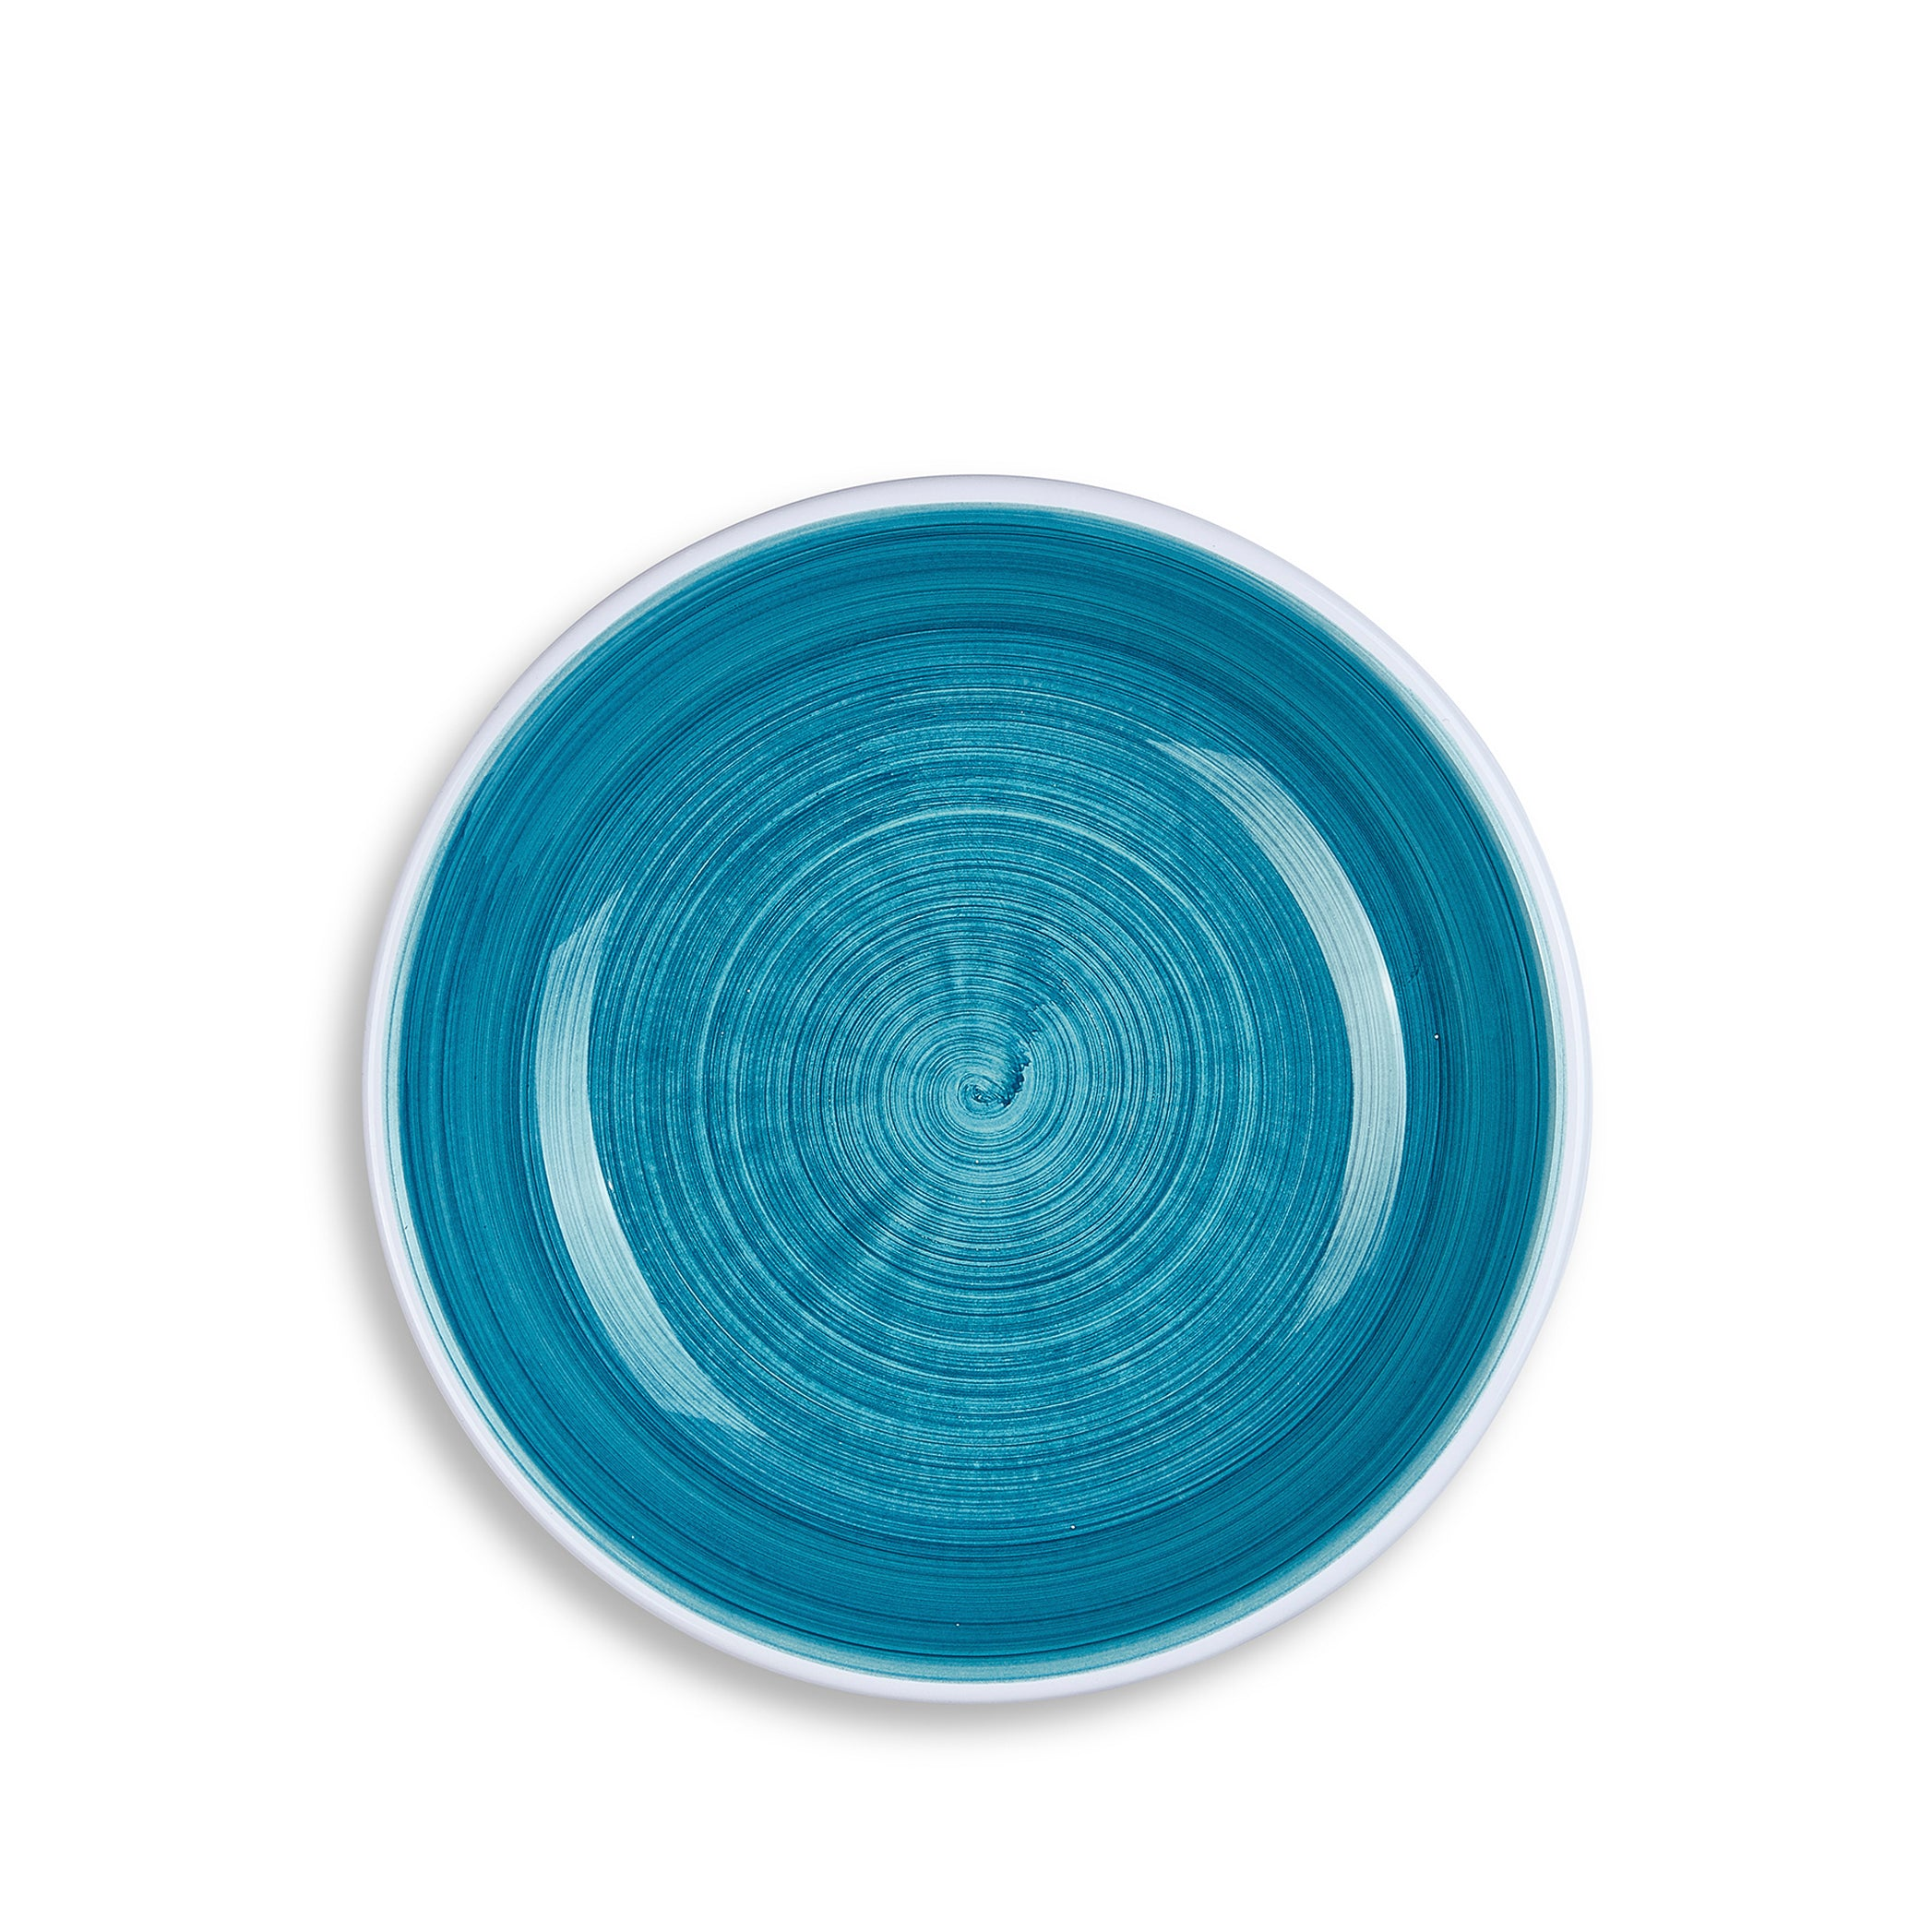 S&B 'Brushed' Ceramic Pasta Bowl in Sea Blue, 22cm